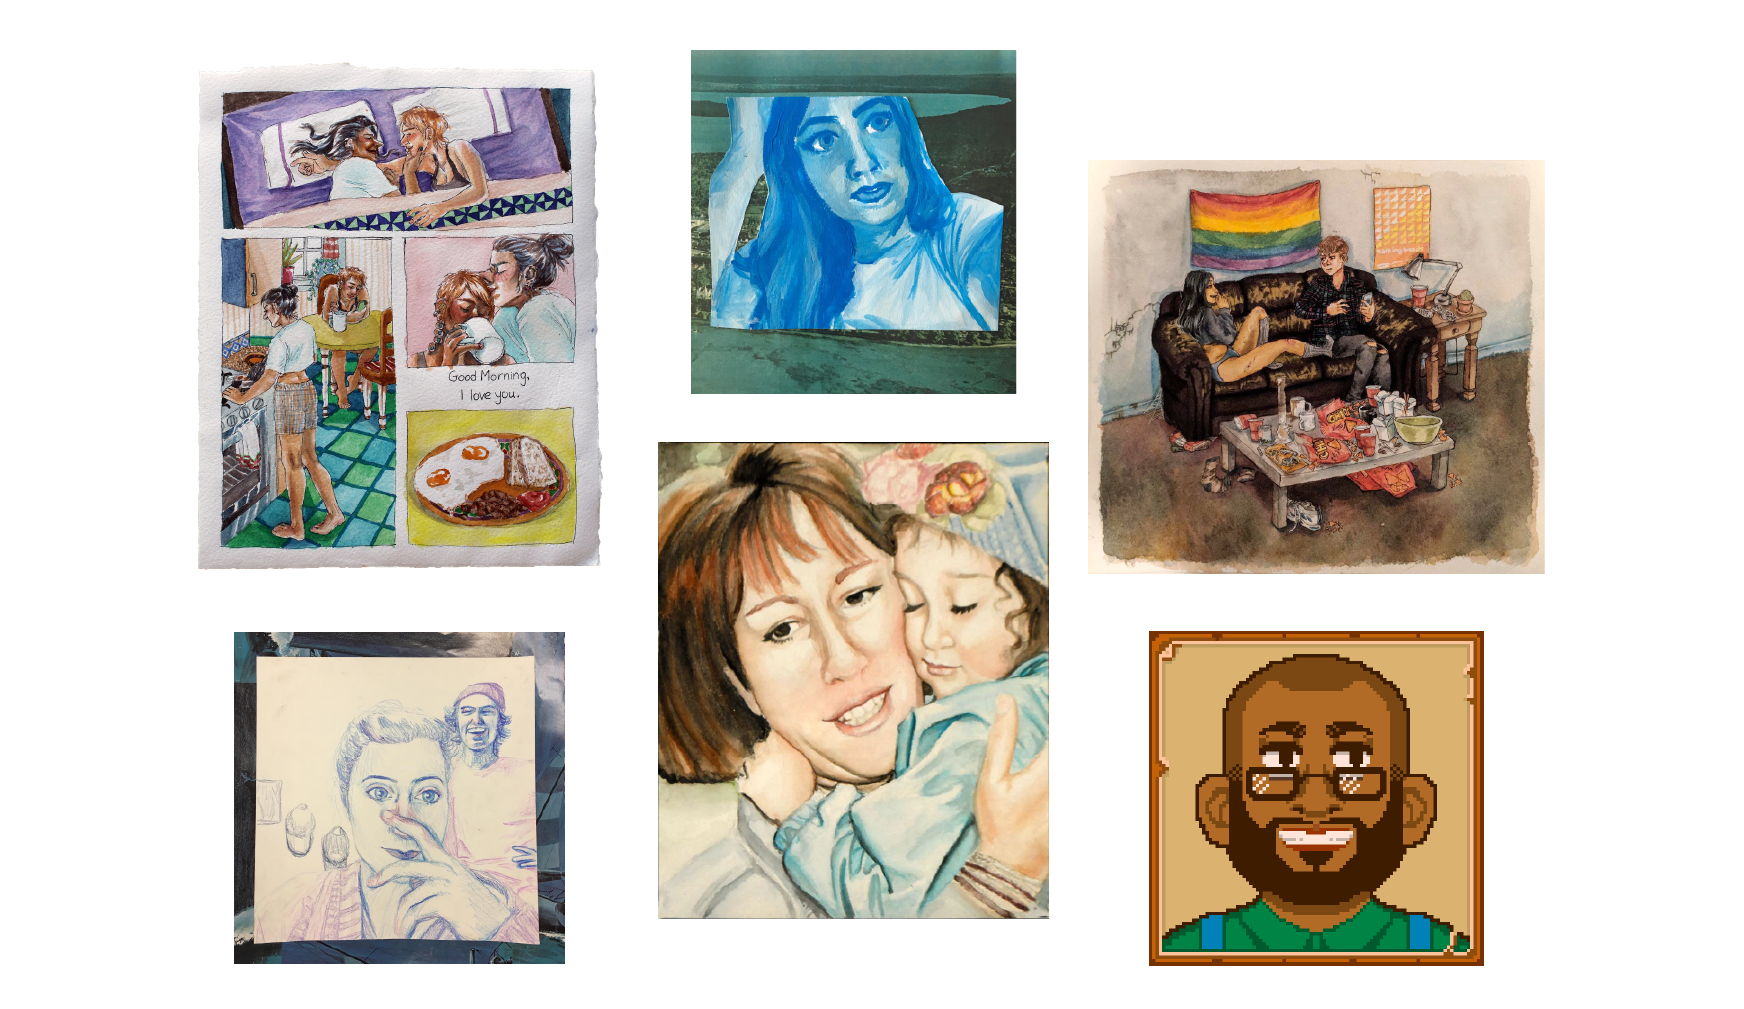 selection of different commissions including works in watercolor, gouache, colored pencil, and digital media.